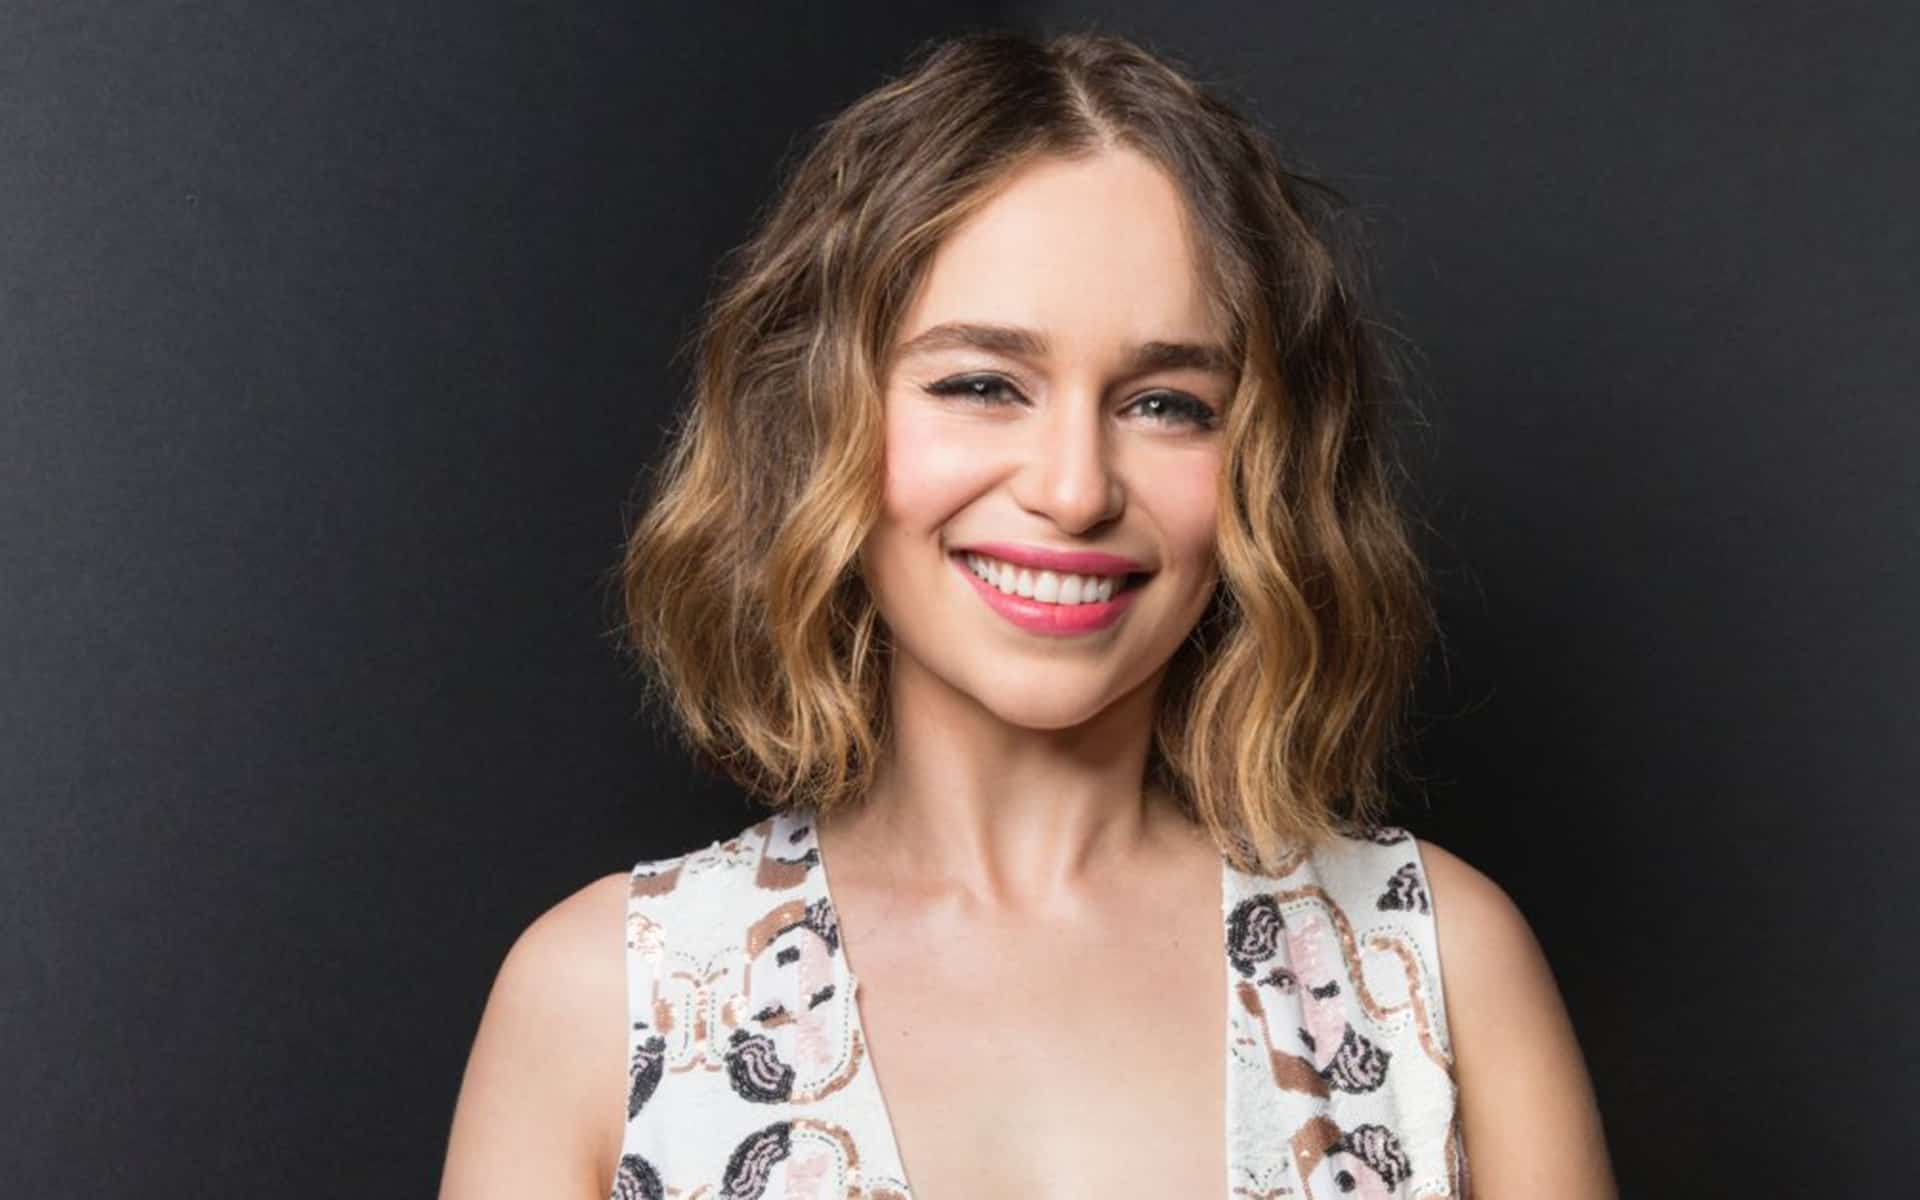 Emilia Clarke Wallpapers Images Pictures For Desktop High